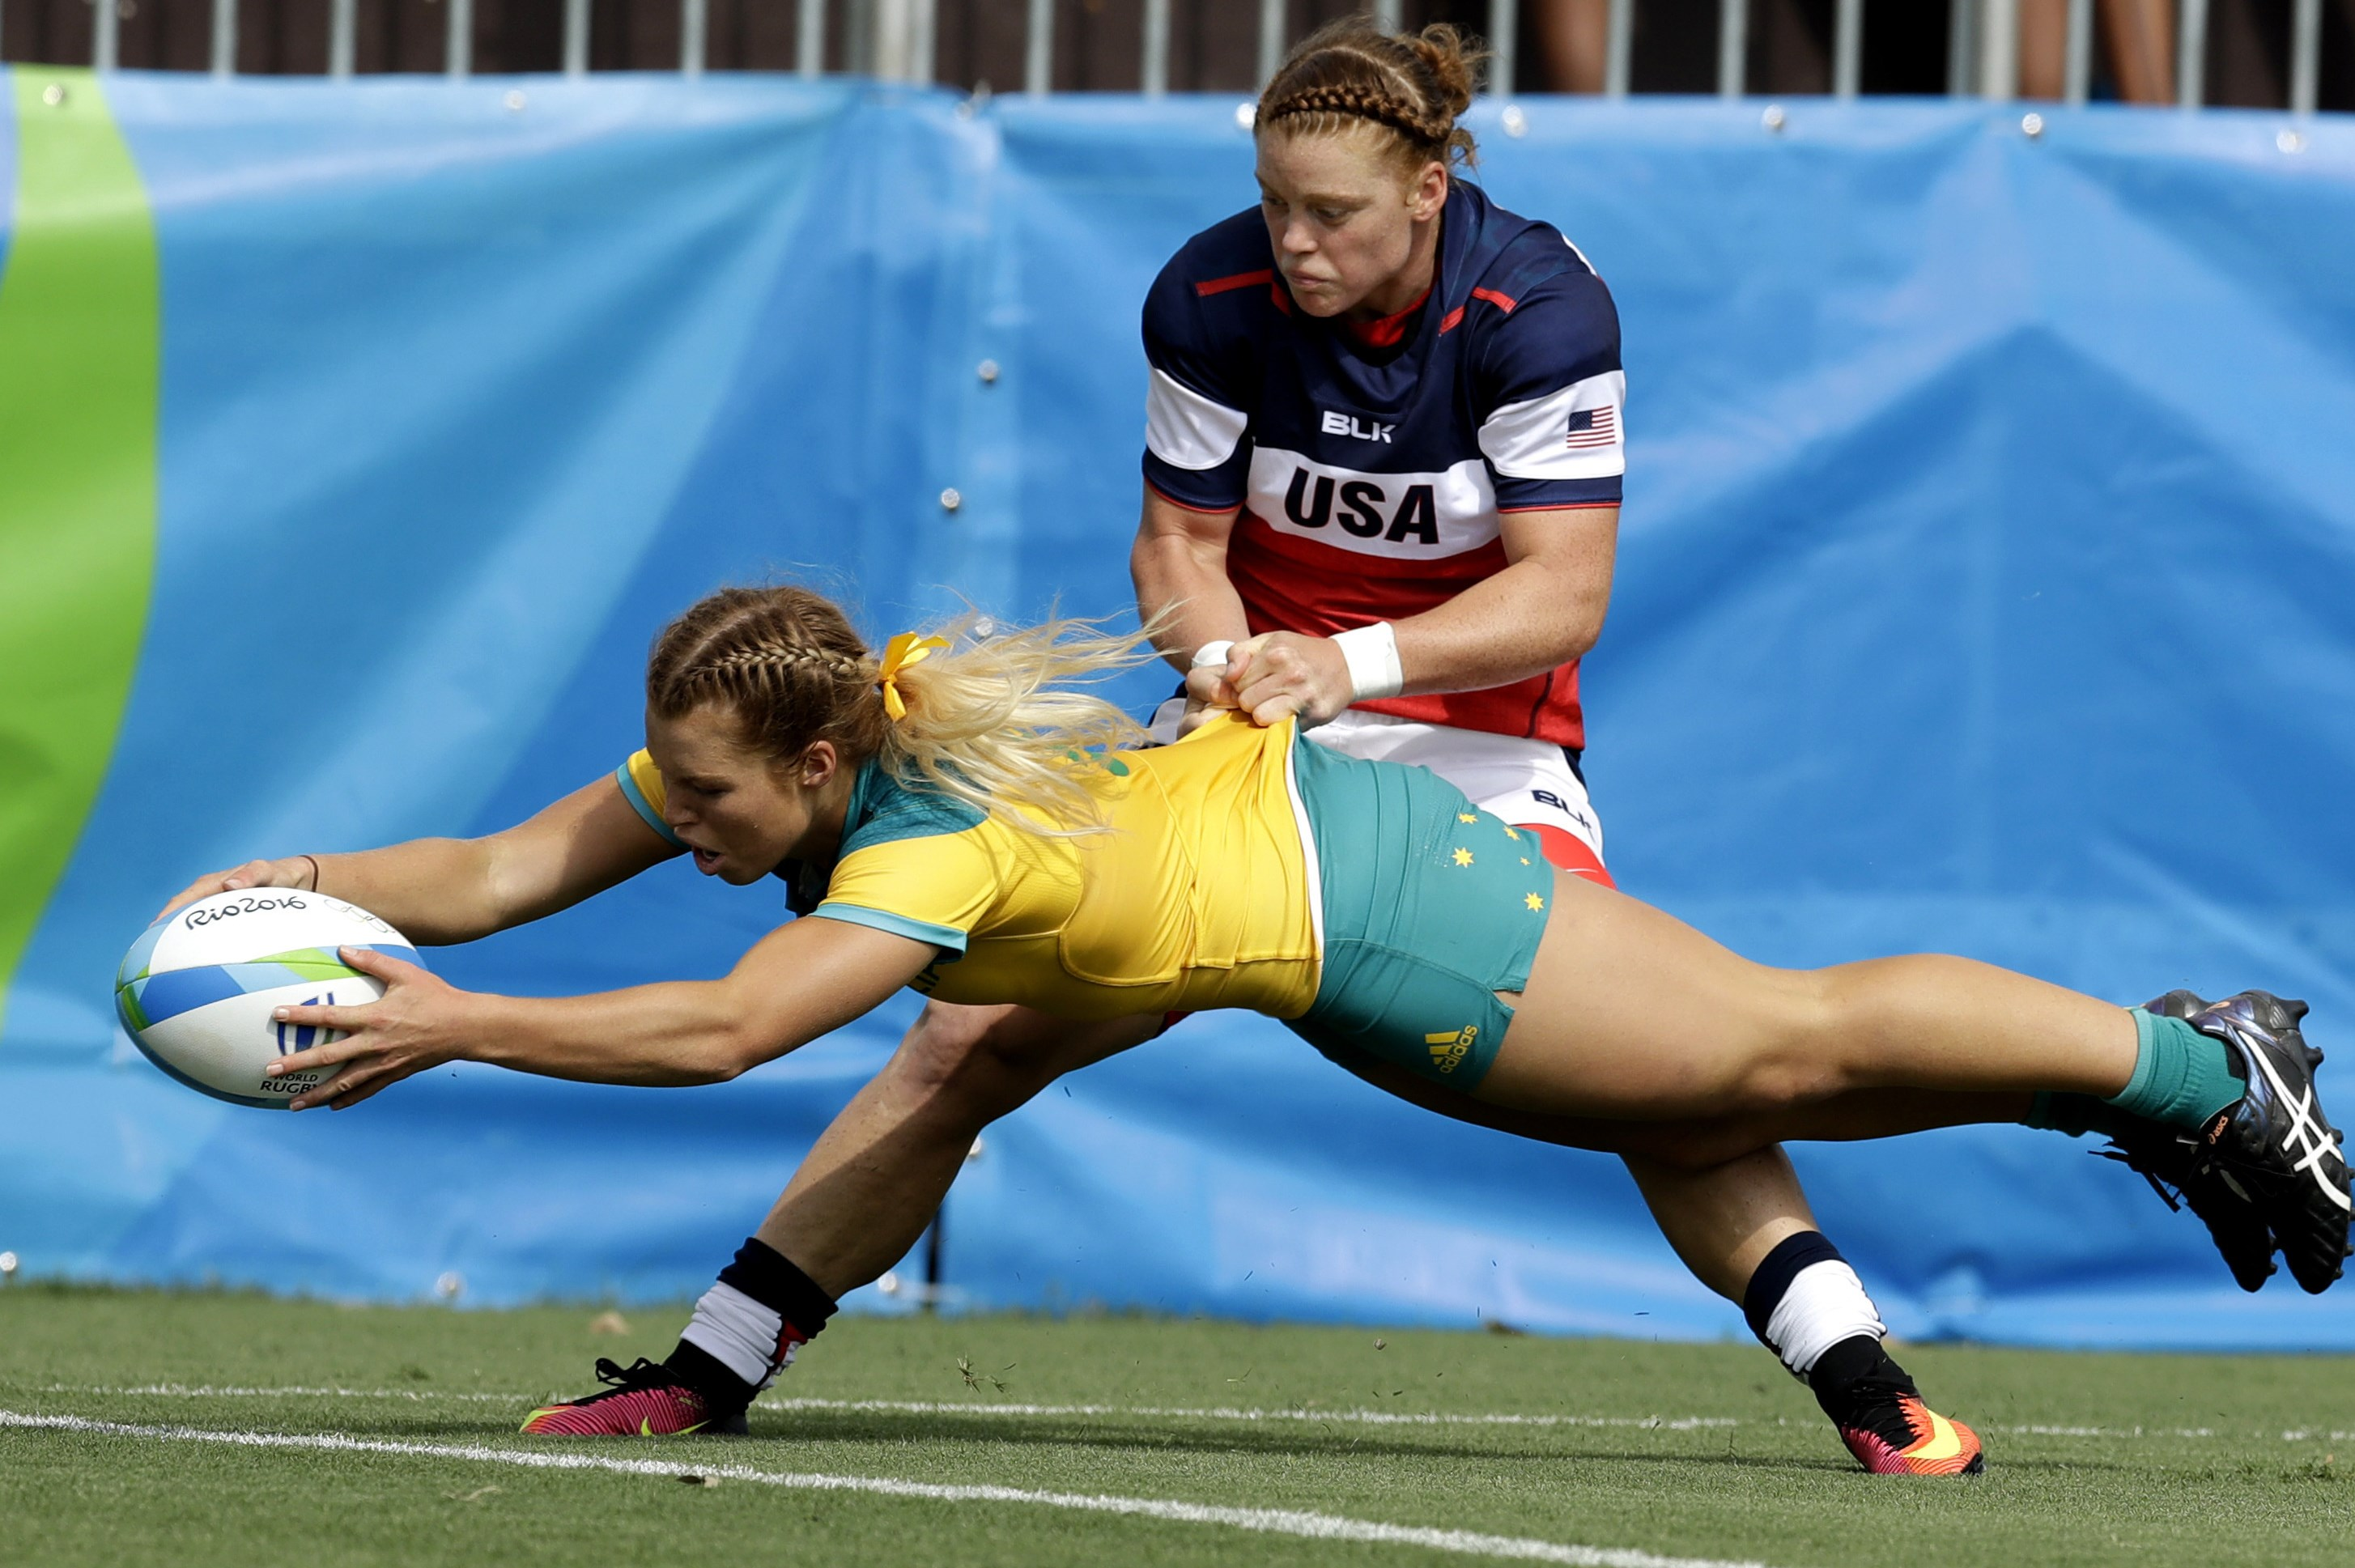 Australia's Emma Tonegato, front, scores a try as USA's Alev Kelter, tries to defend during the women's rugby sevens match at the Summer Olympics in Rio de Janeiro, Brazil, Sunday, Aug. 7, 2016. (AP Photo/Themba Hadebe)